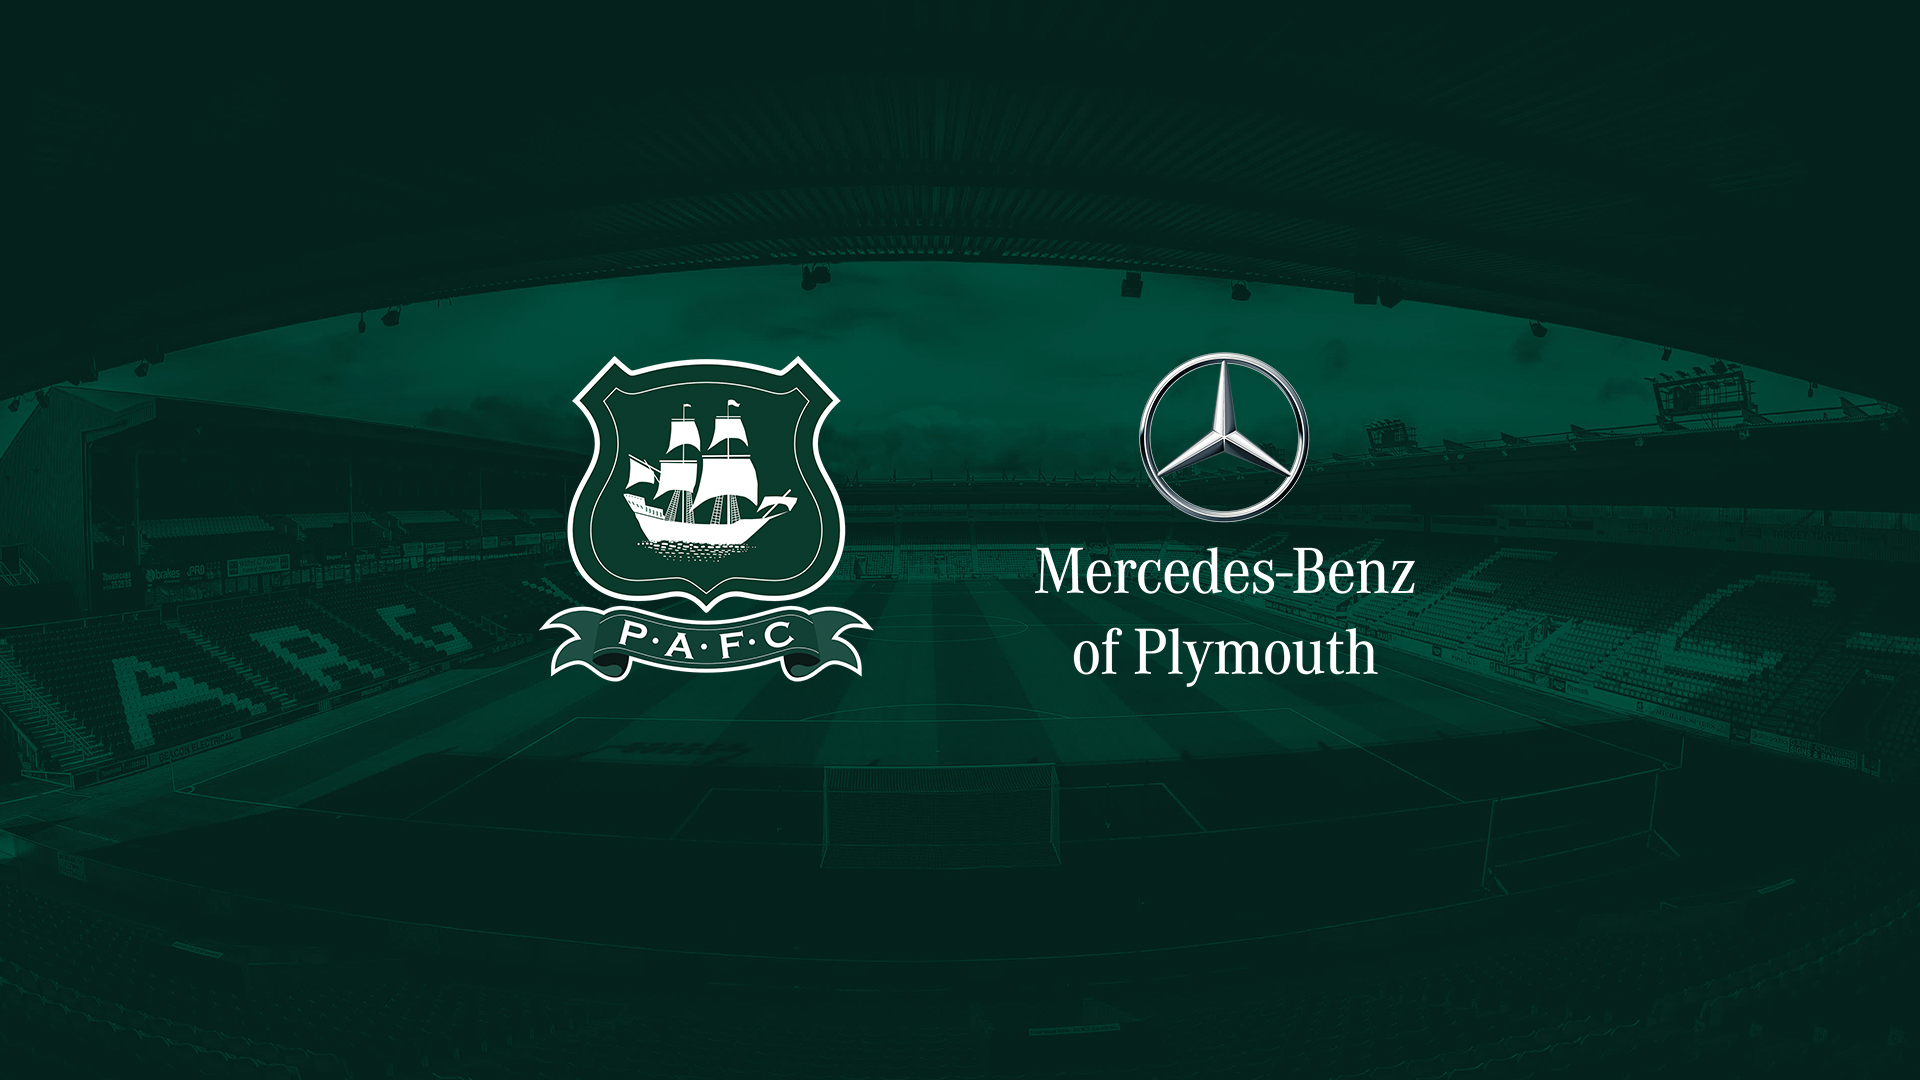 PAFC x MBSW